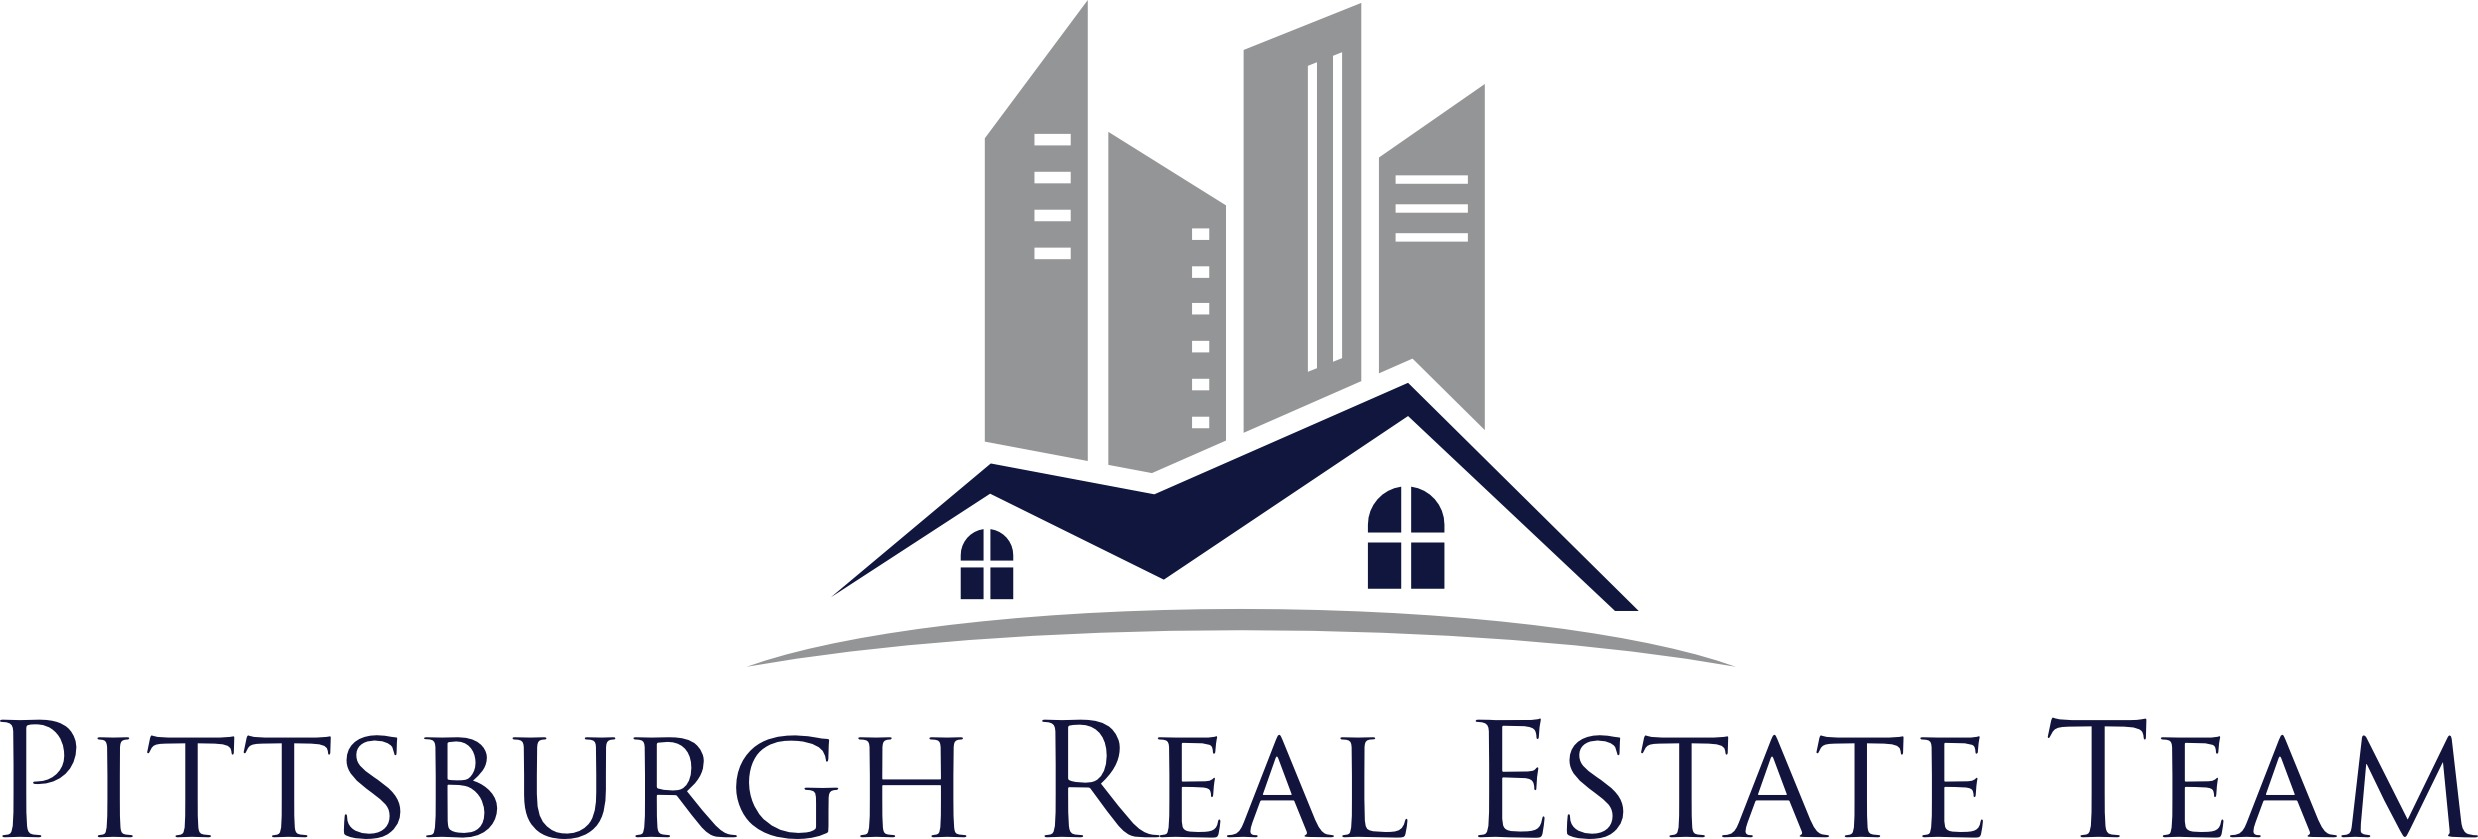 Allegheny Property Real Estate